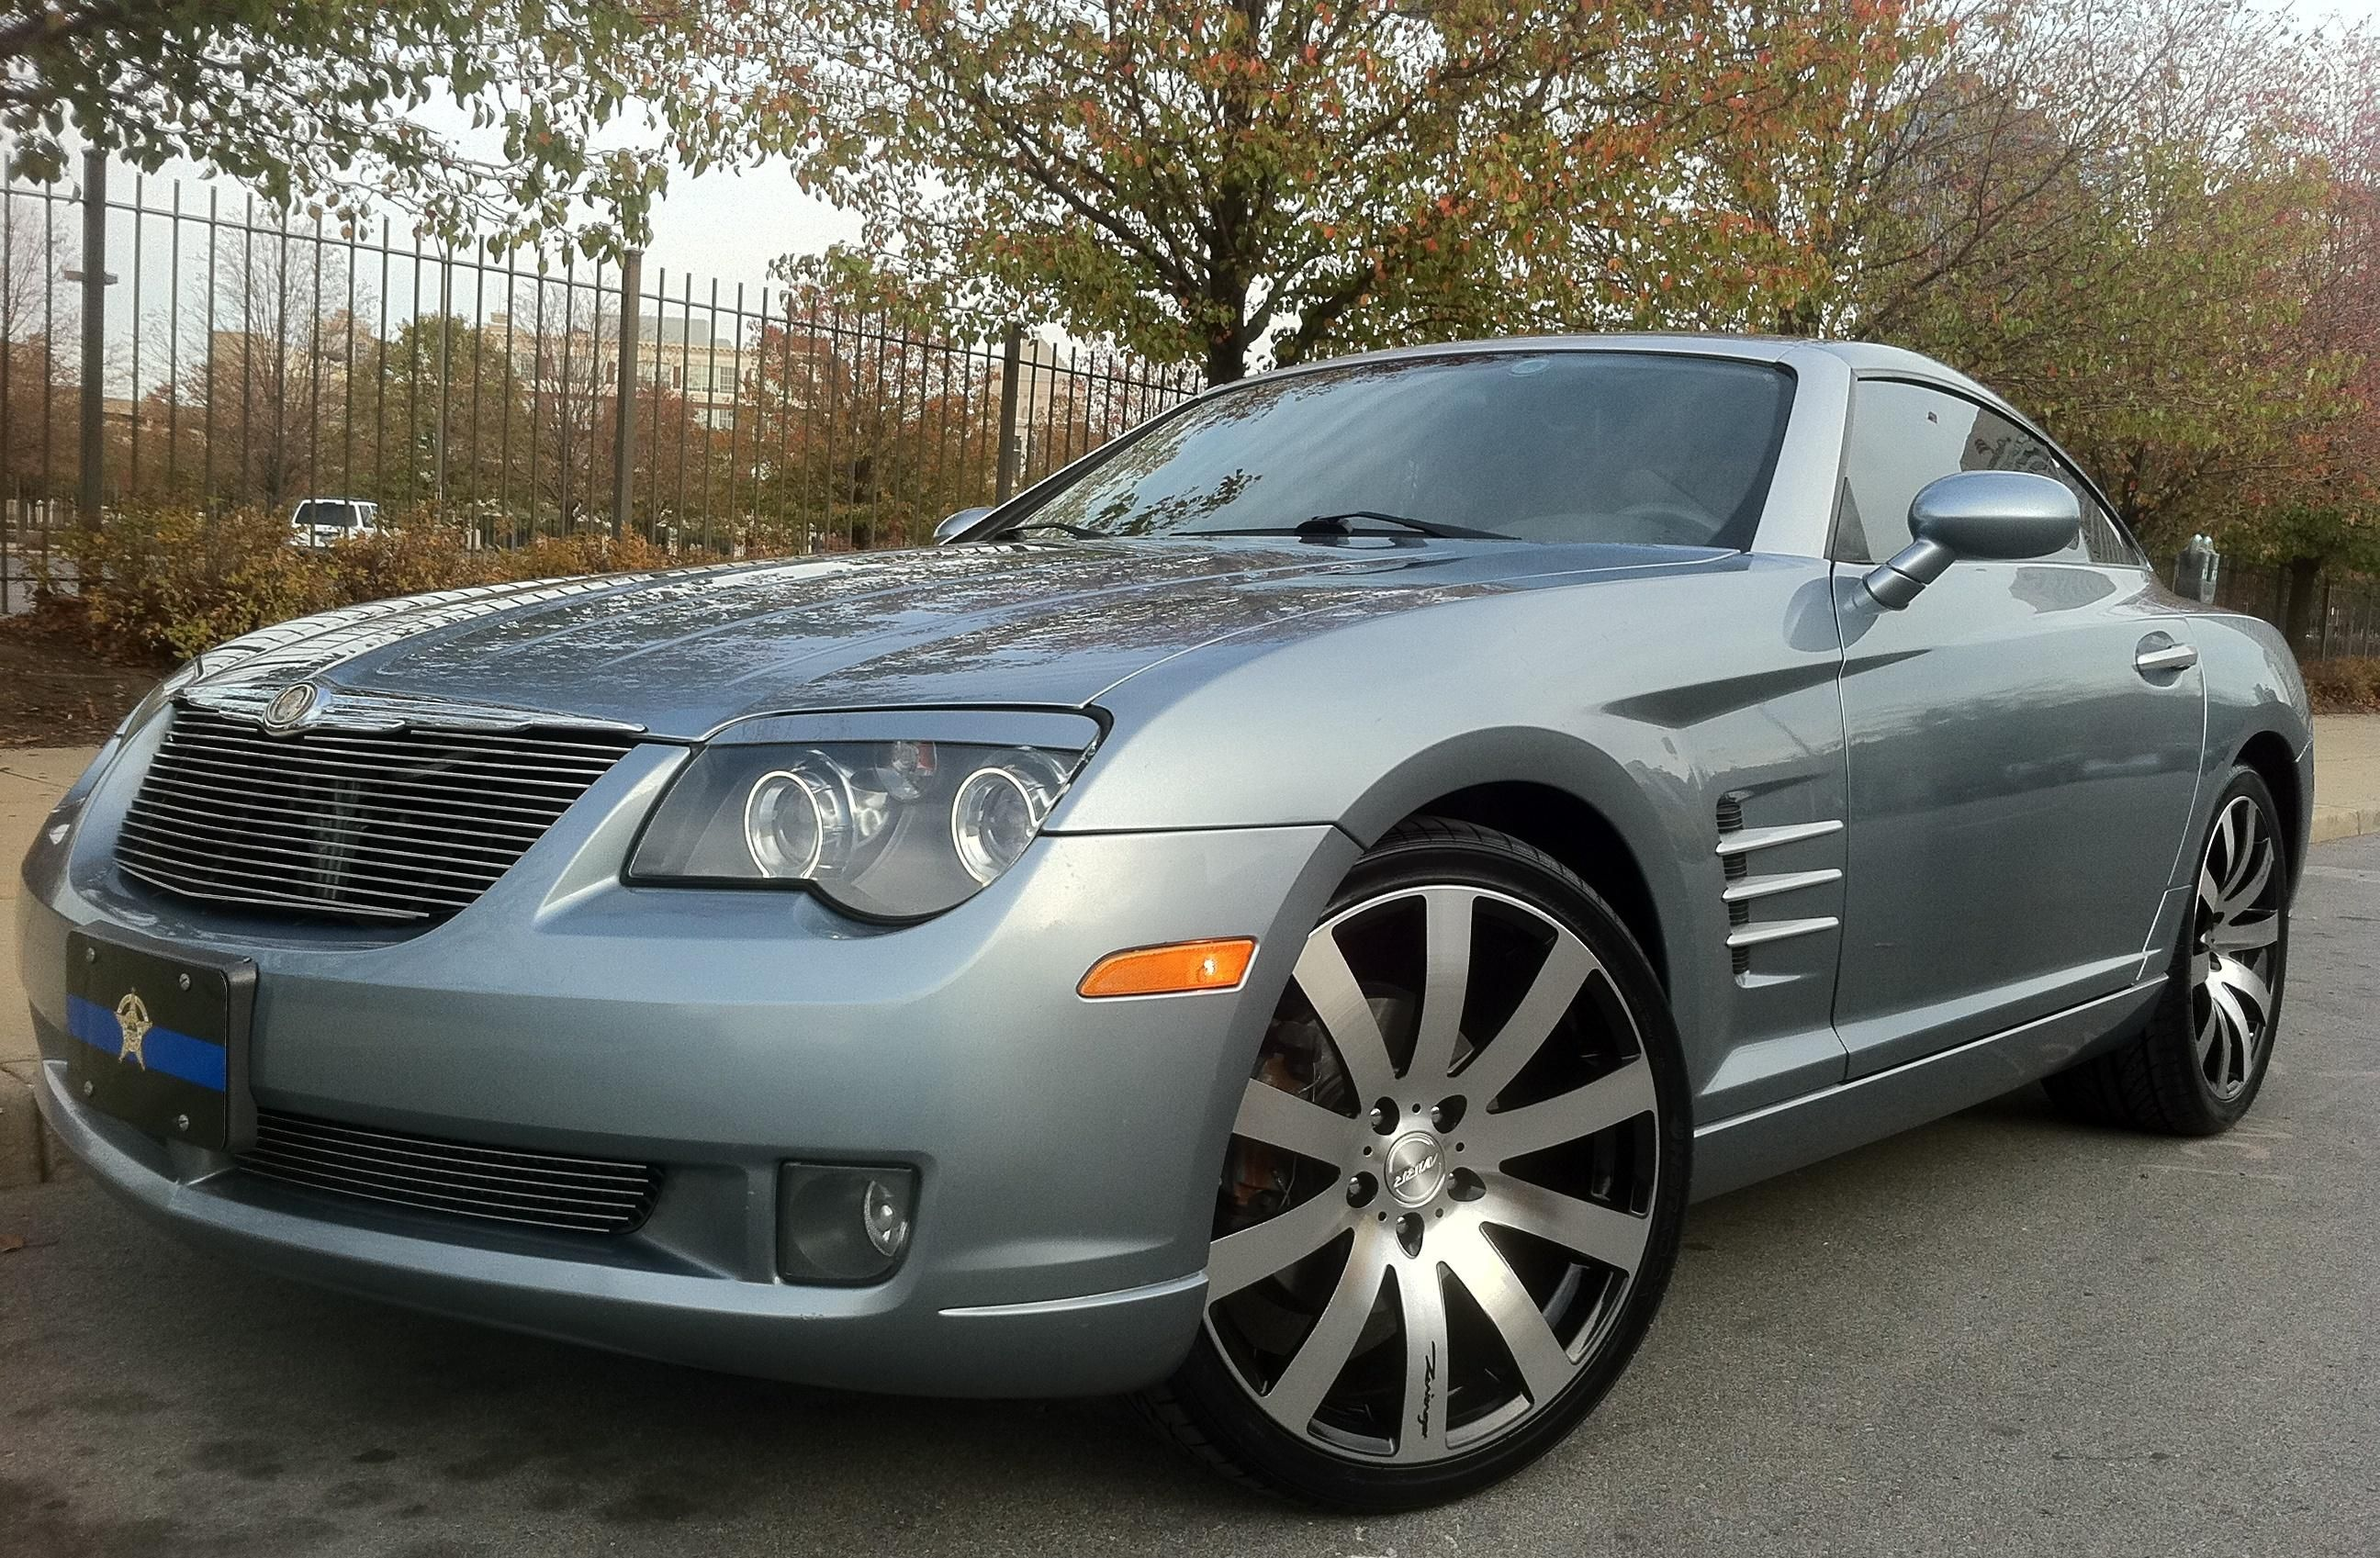 Chrysler Crossfire With Our Custom Billet Grille On It Our